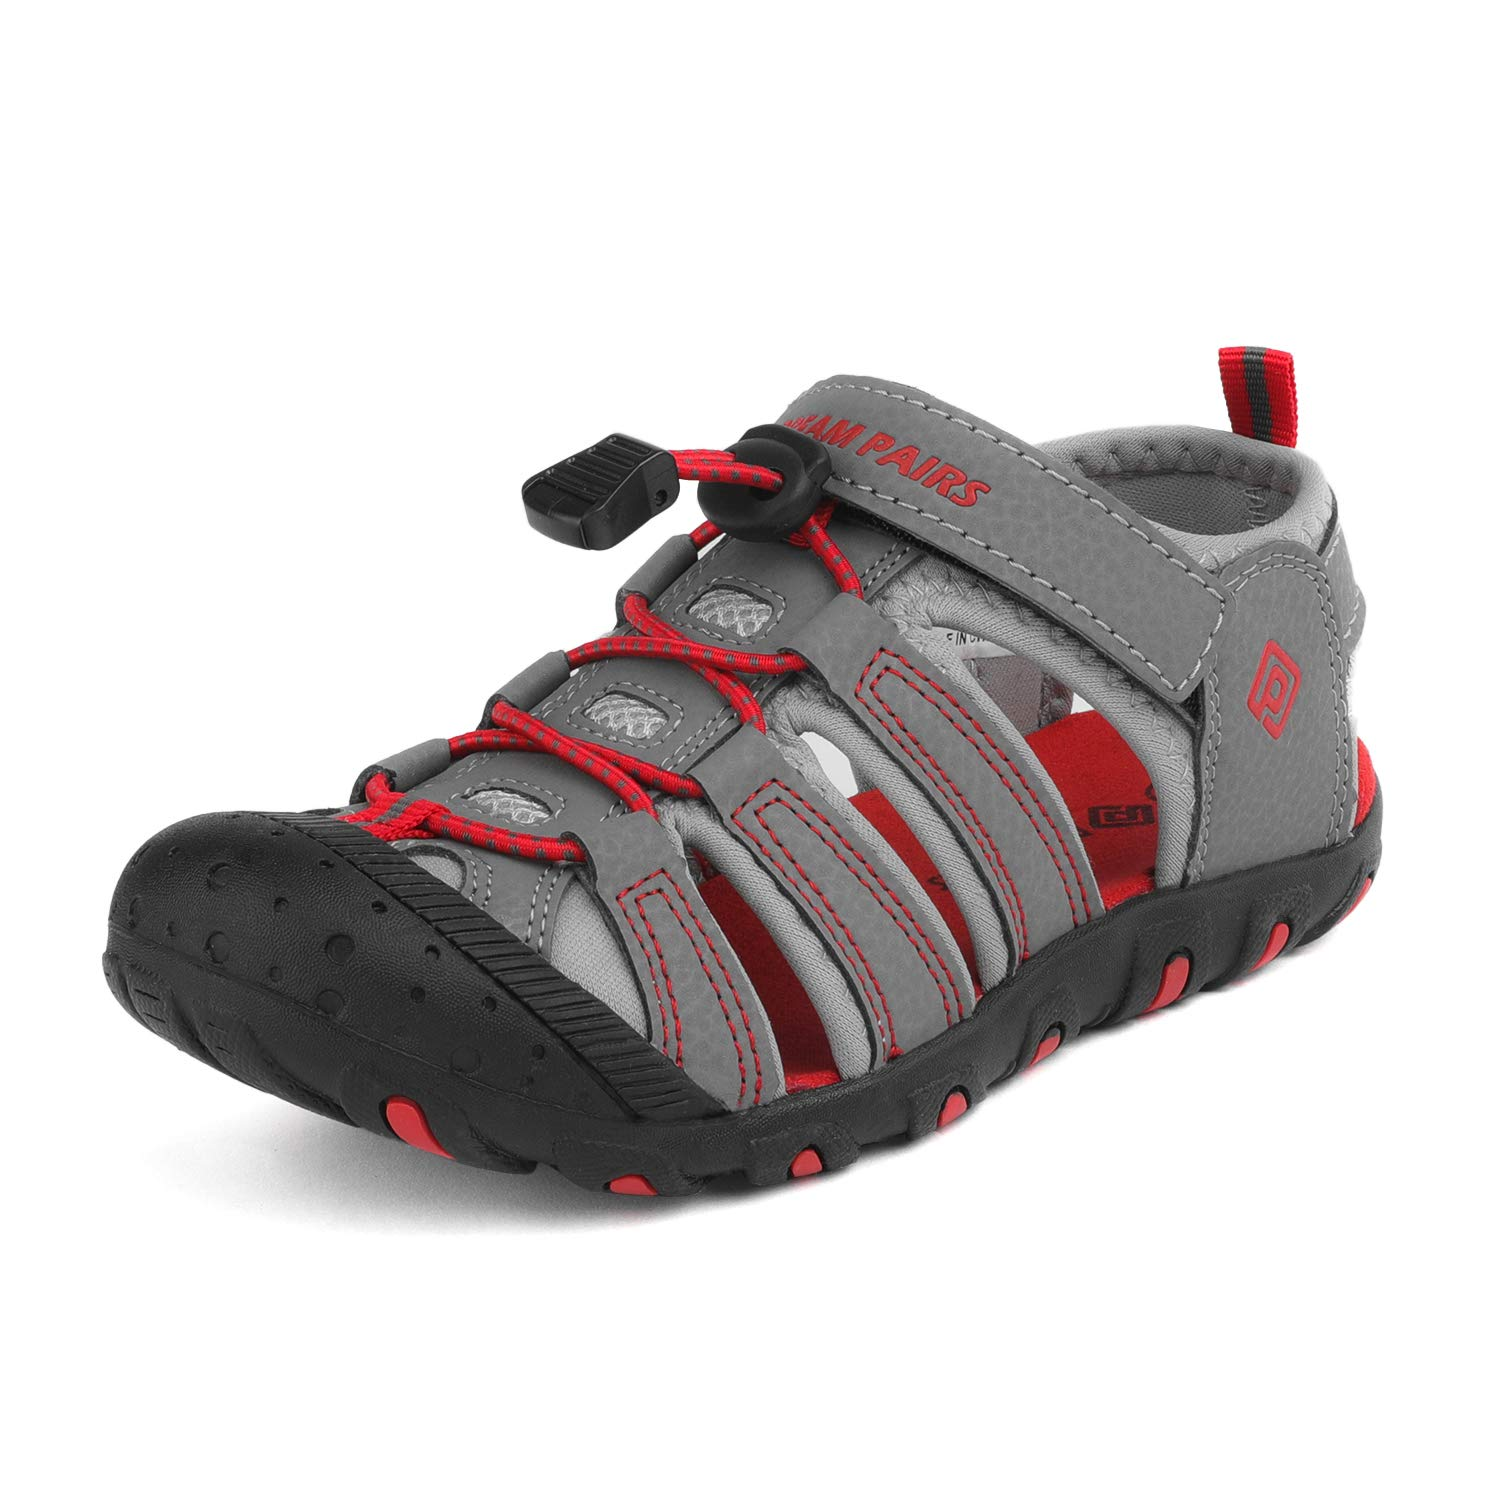 DREAM PAIRS Boys Big Kid 181105K Grey Light Grey Red Athletic Outdoor Summer Sandals Size 5 M US Big Kid